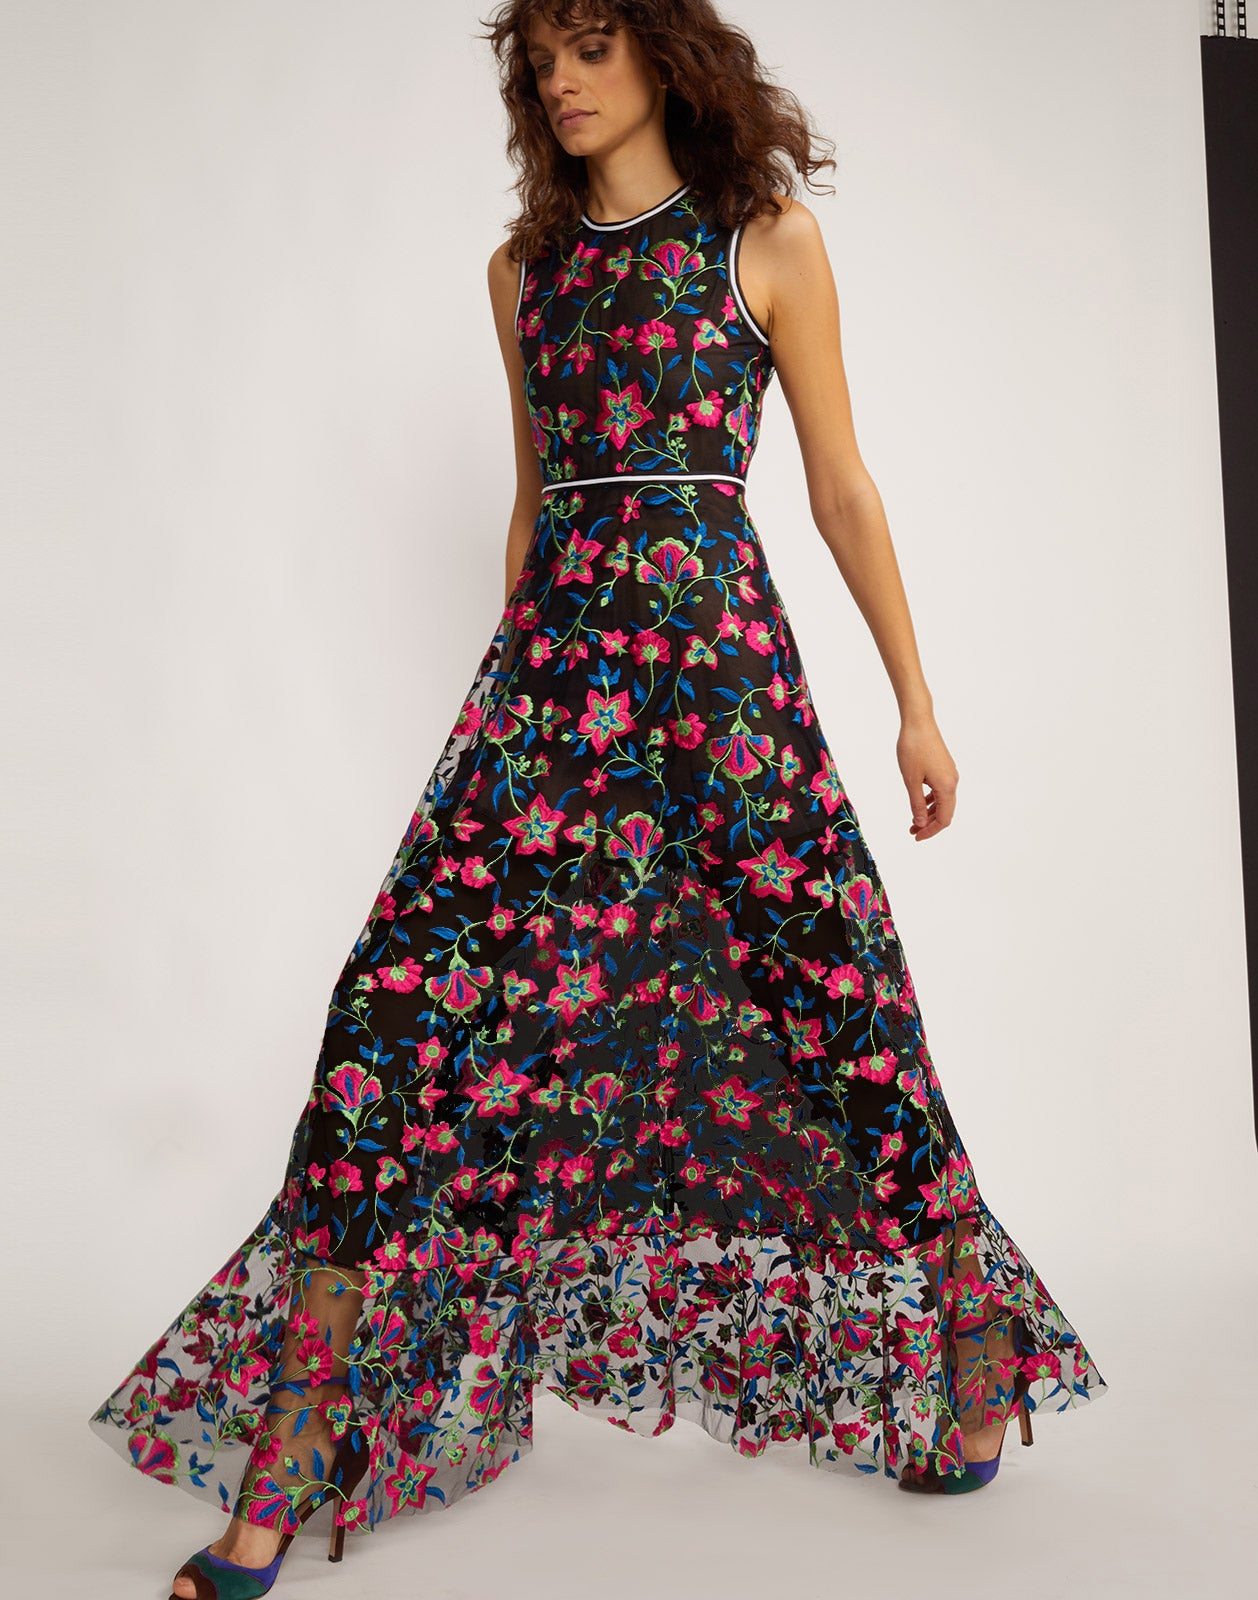 81d4b8e2b44 Three quarter view of the embroidered mesh maxi dress ...